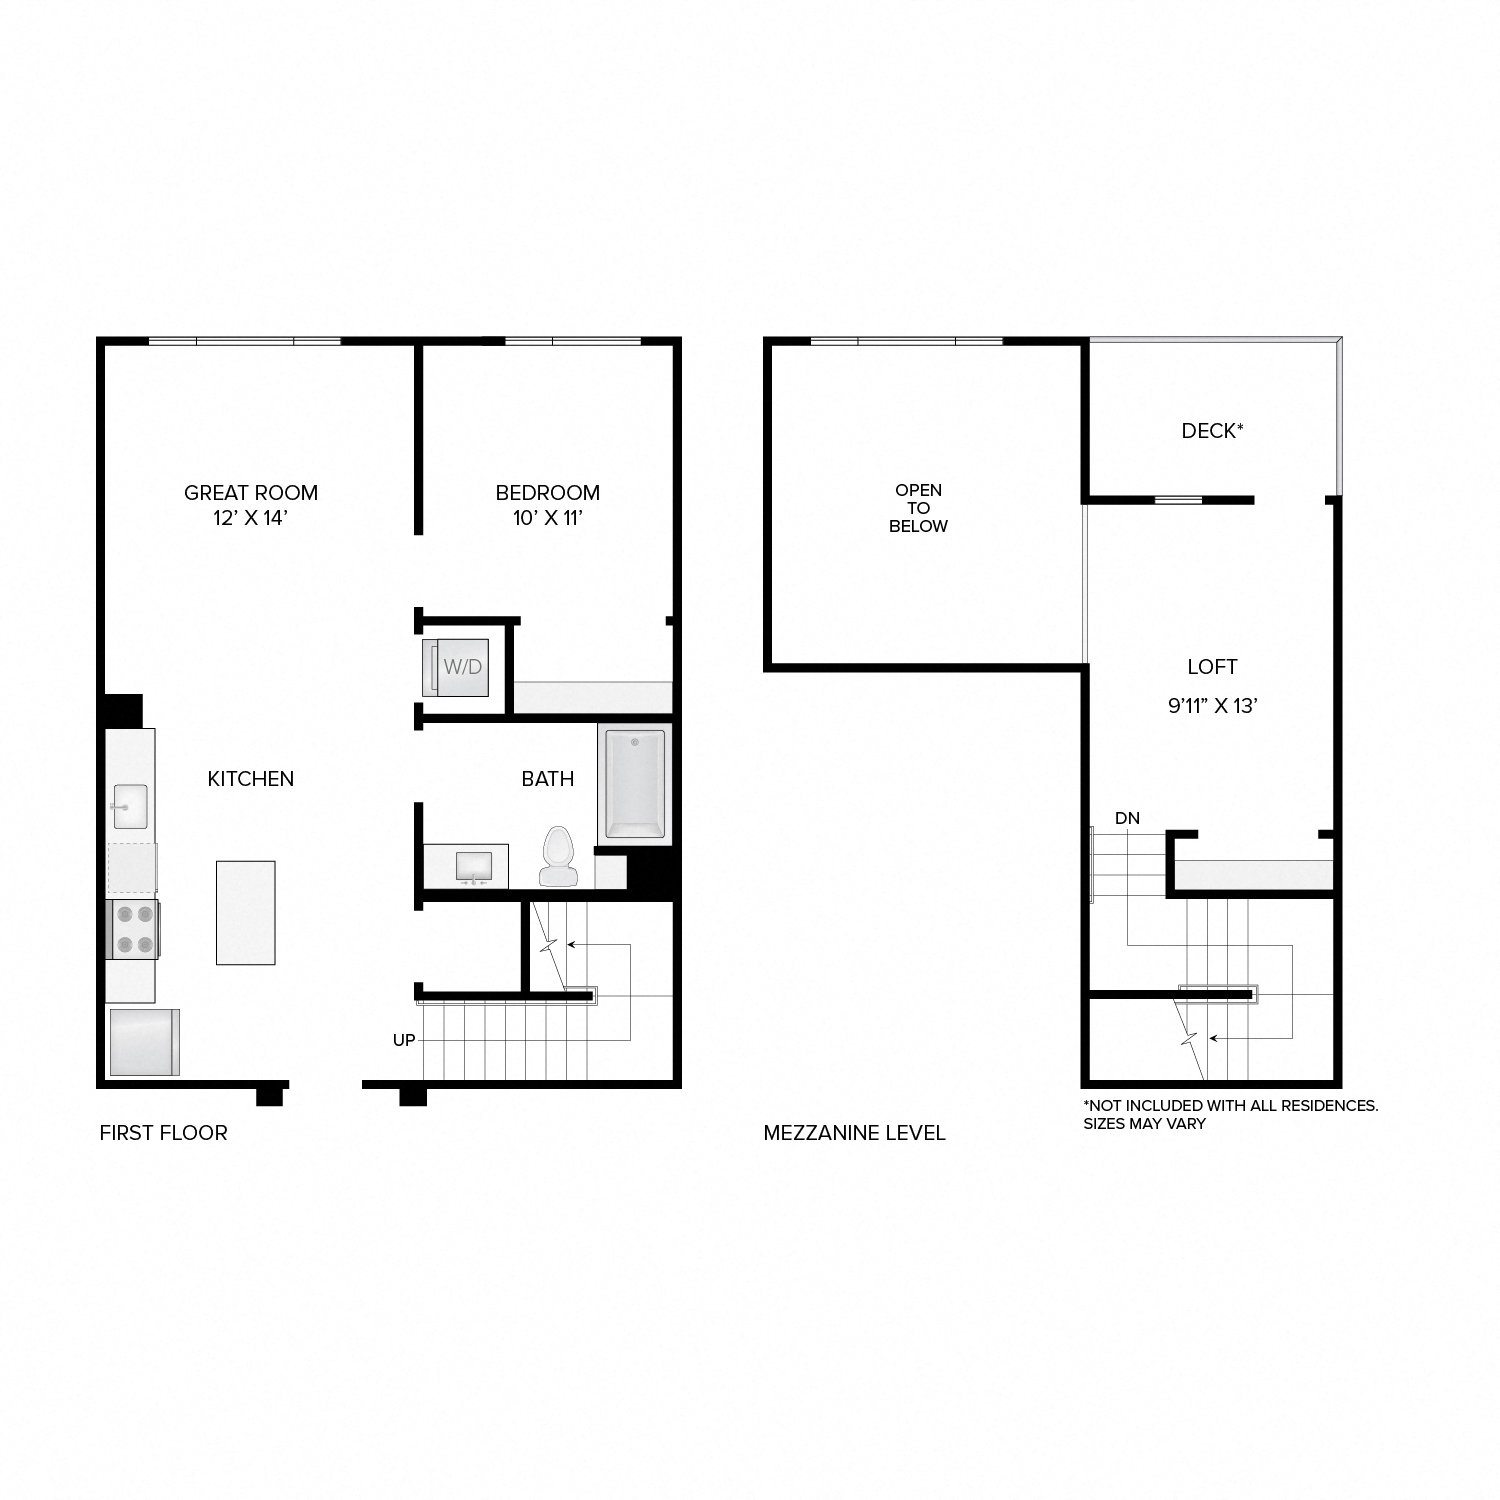 Diagram of the Webster Classic floor plan. One bedroom, one bathroom, a loft, an open kitchen and living area, a washer dryer, and in select residences, a deck.